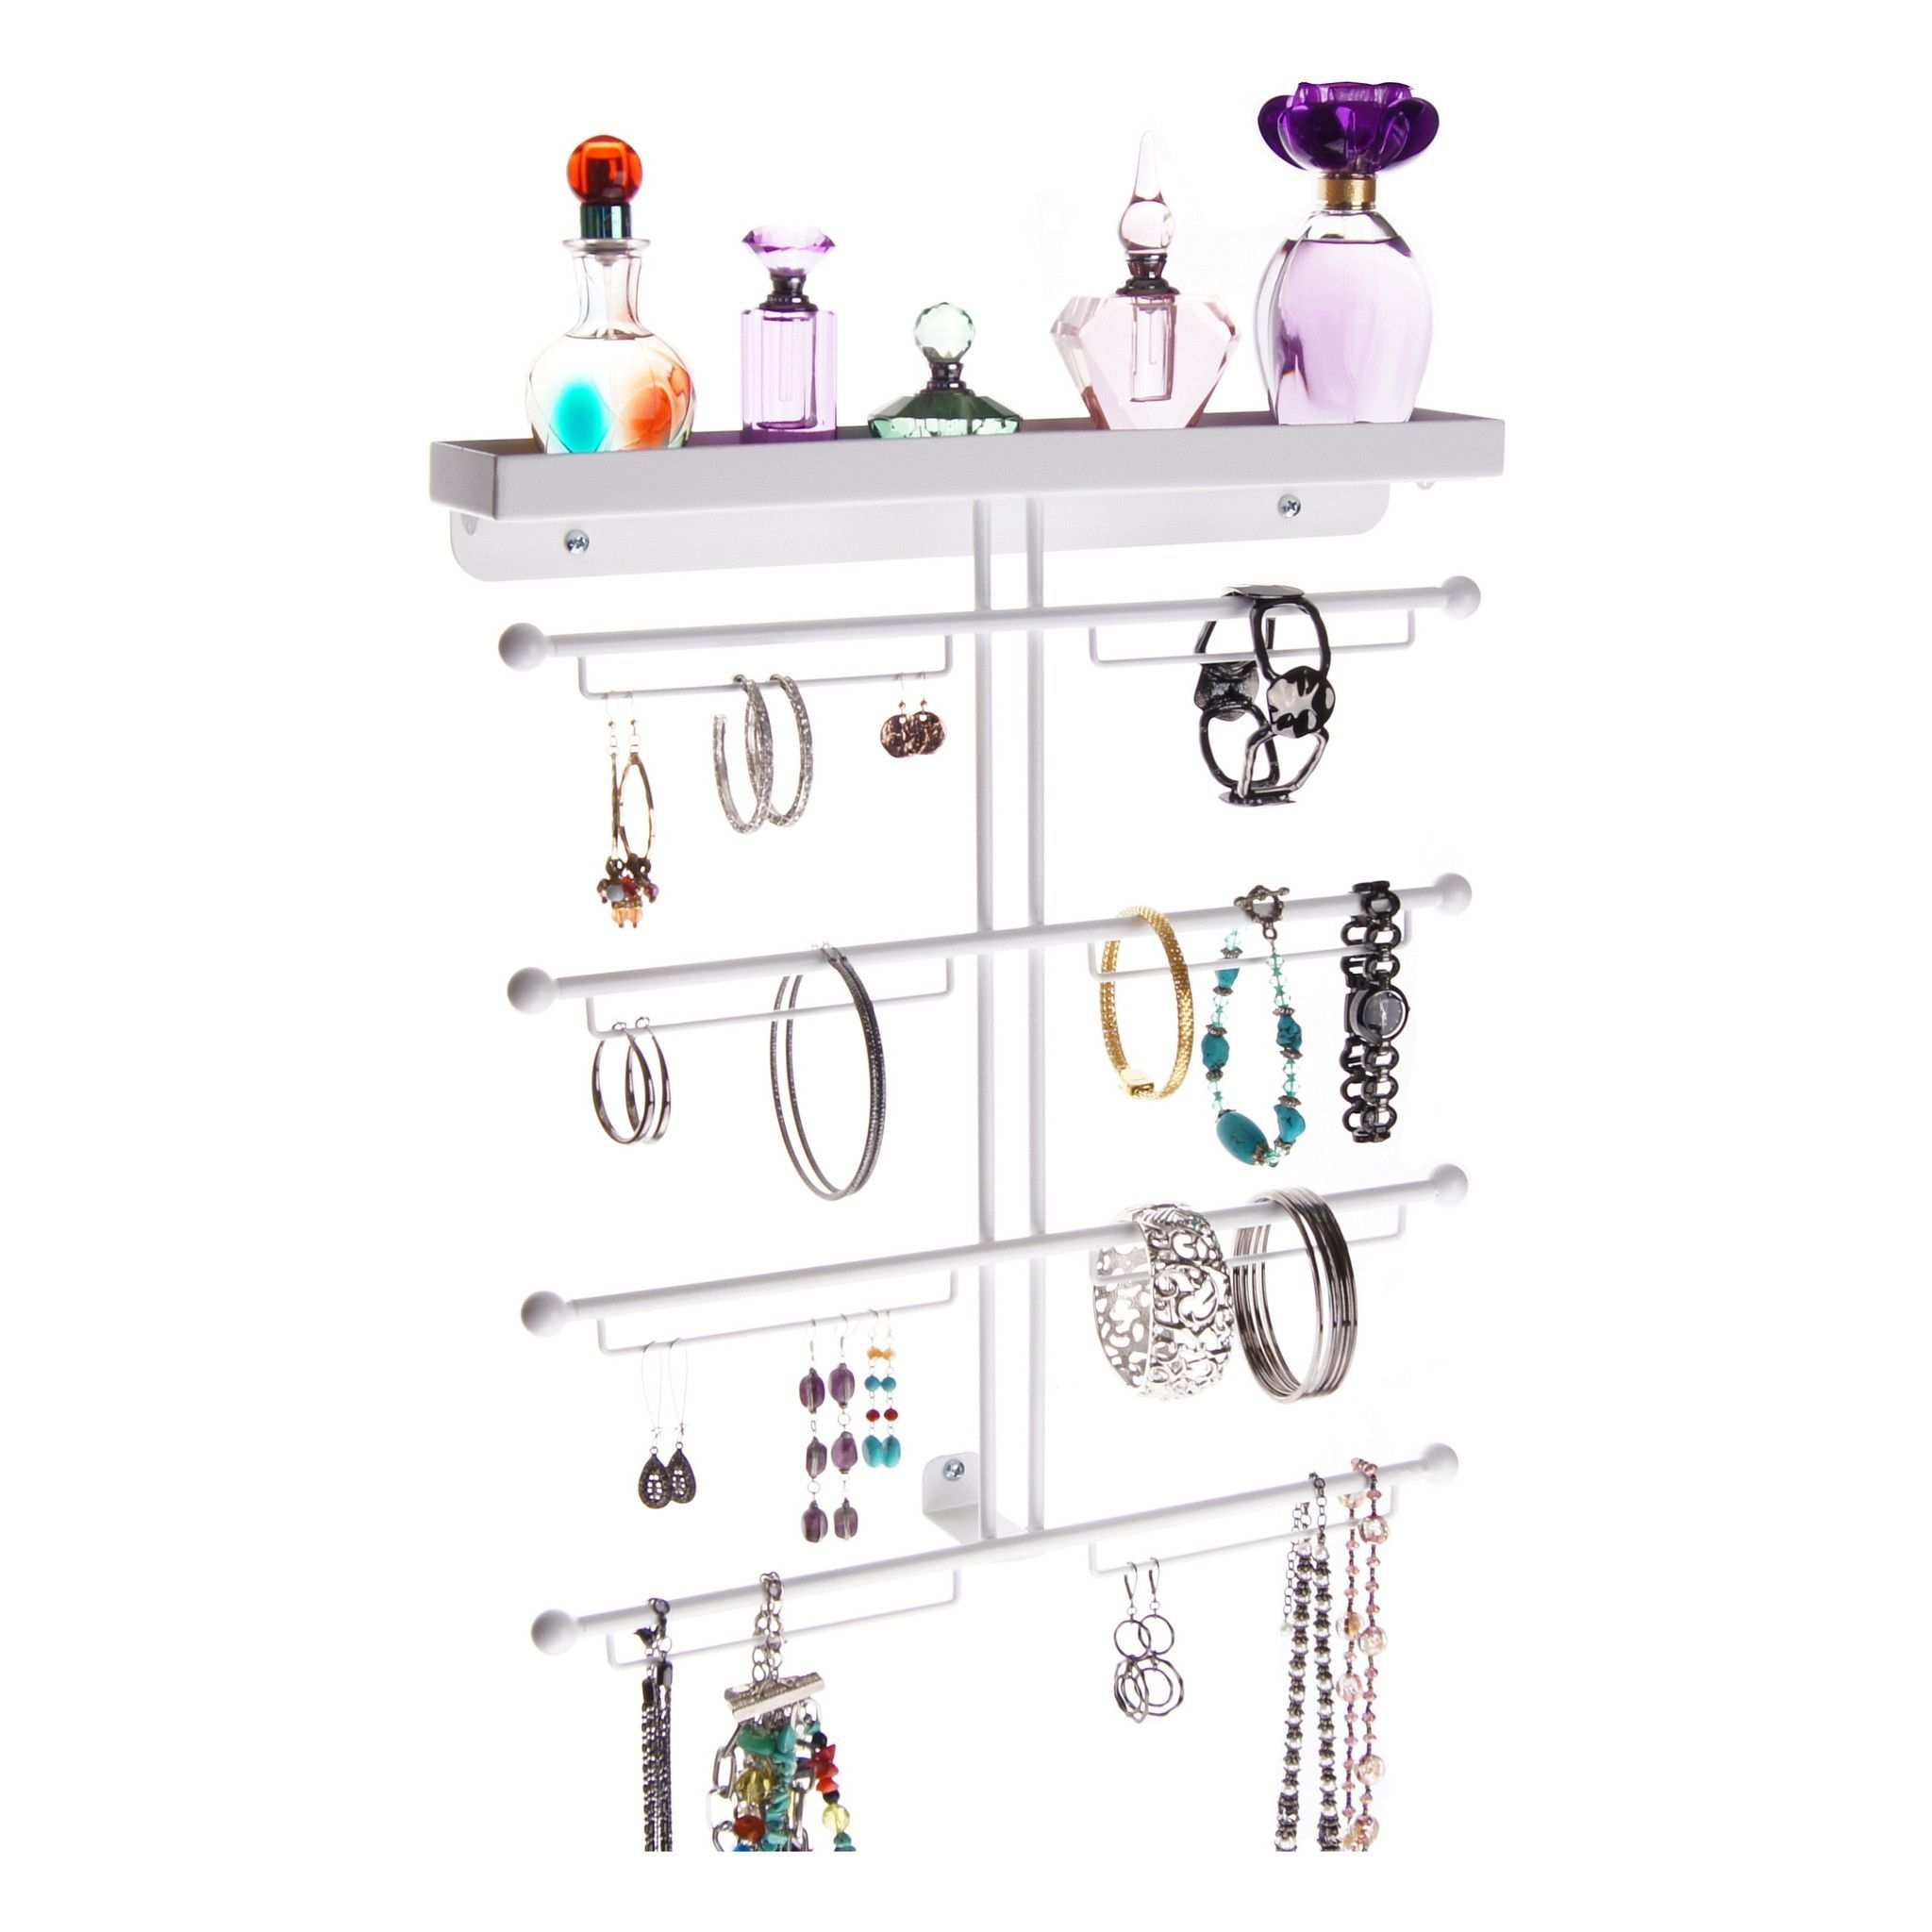 The Carol Jewelry Organizer is a unique hanging wall mount metal